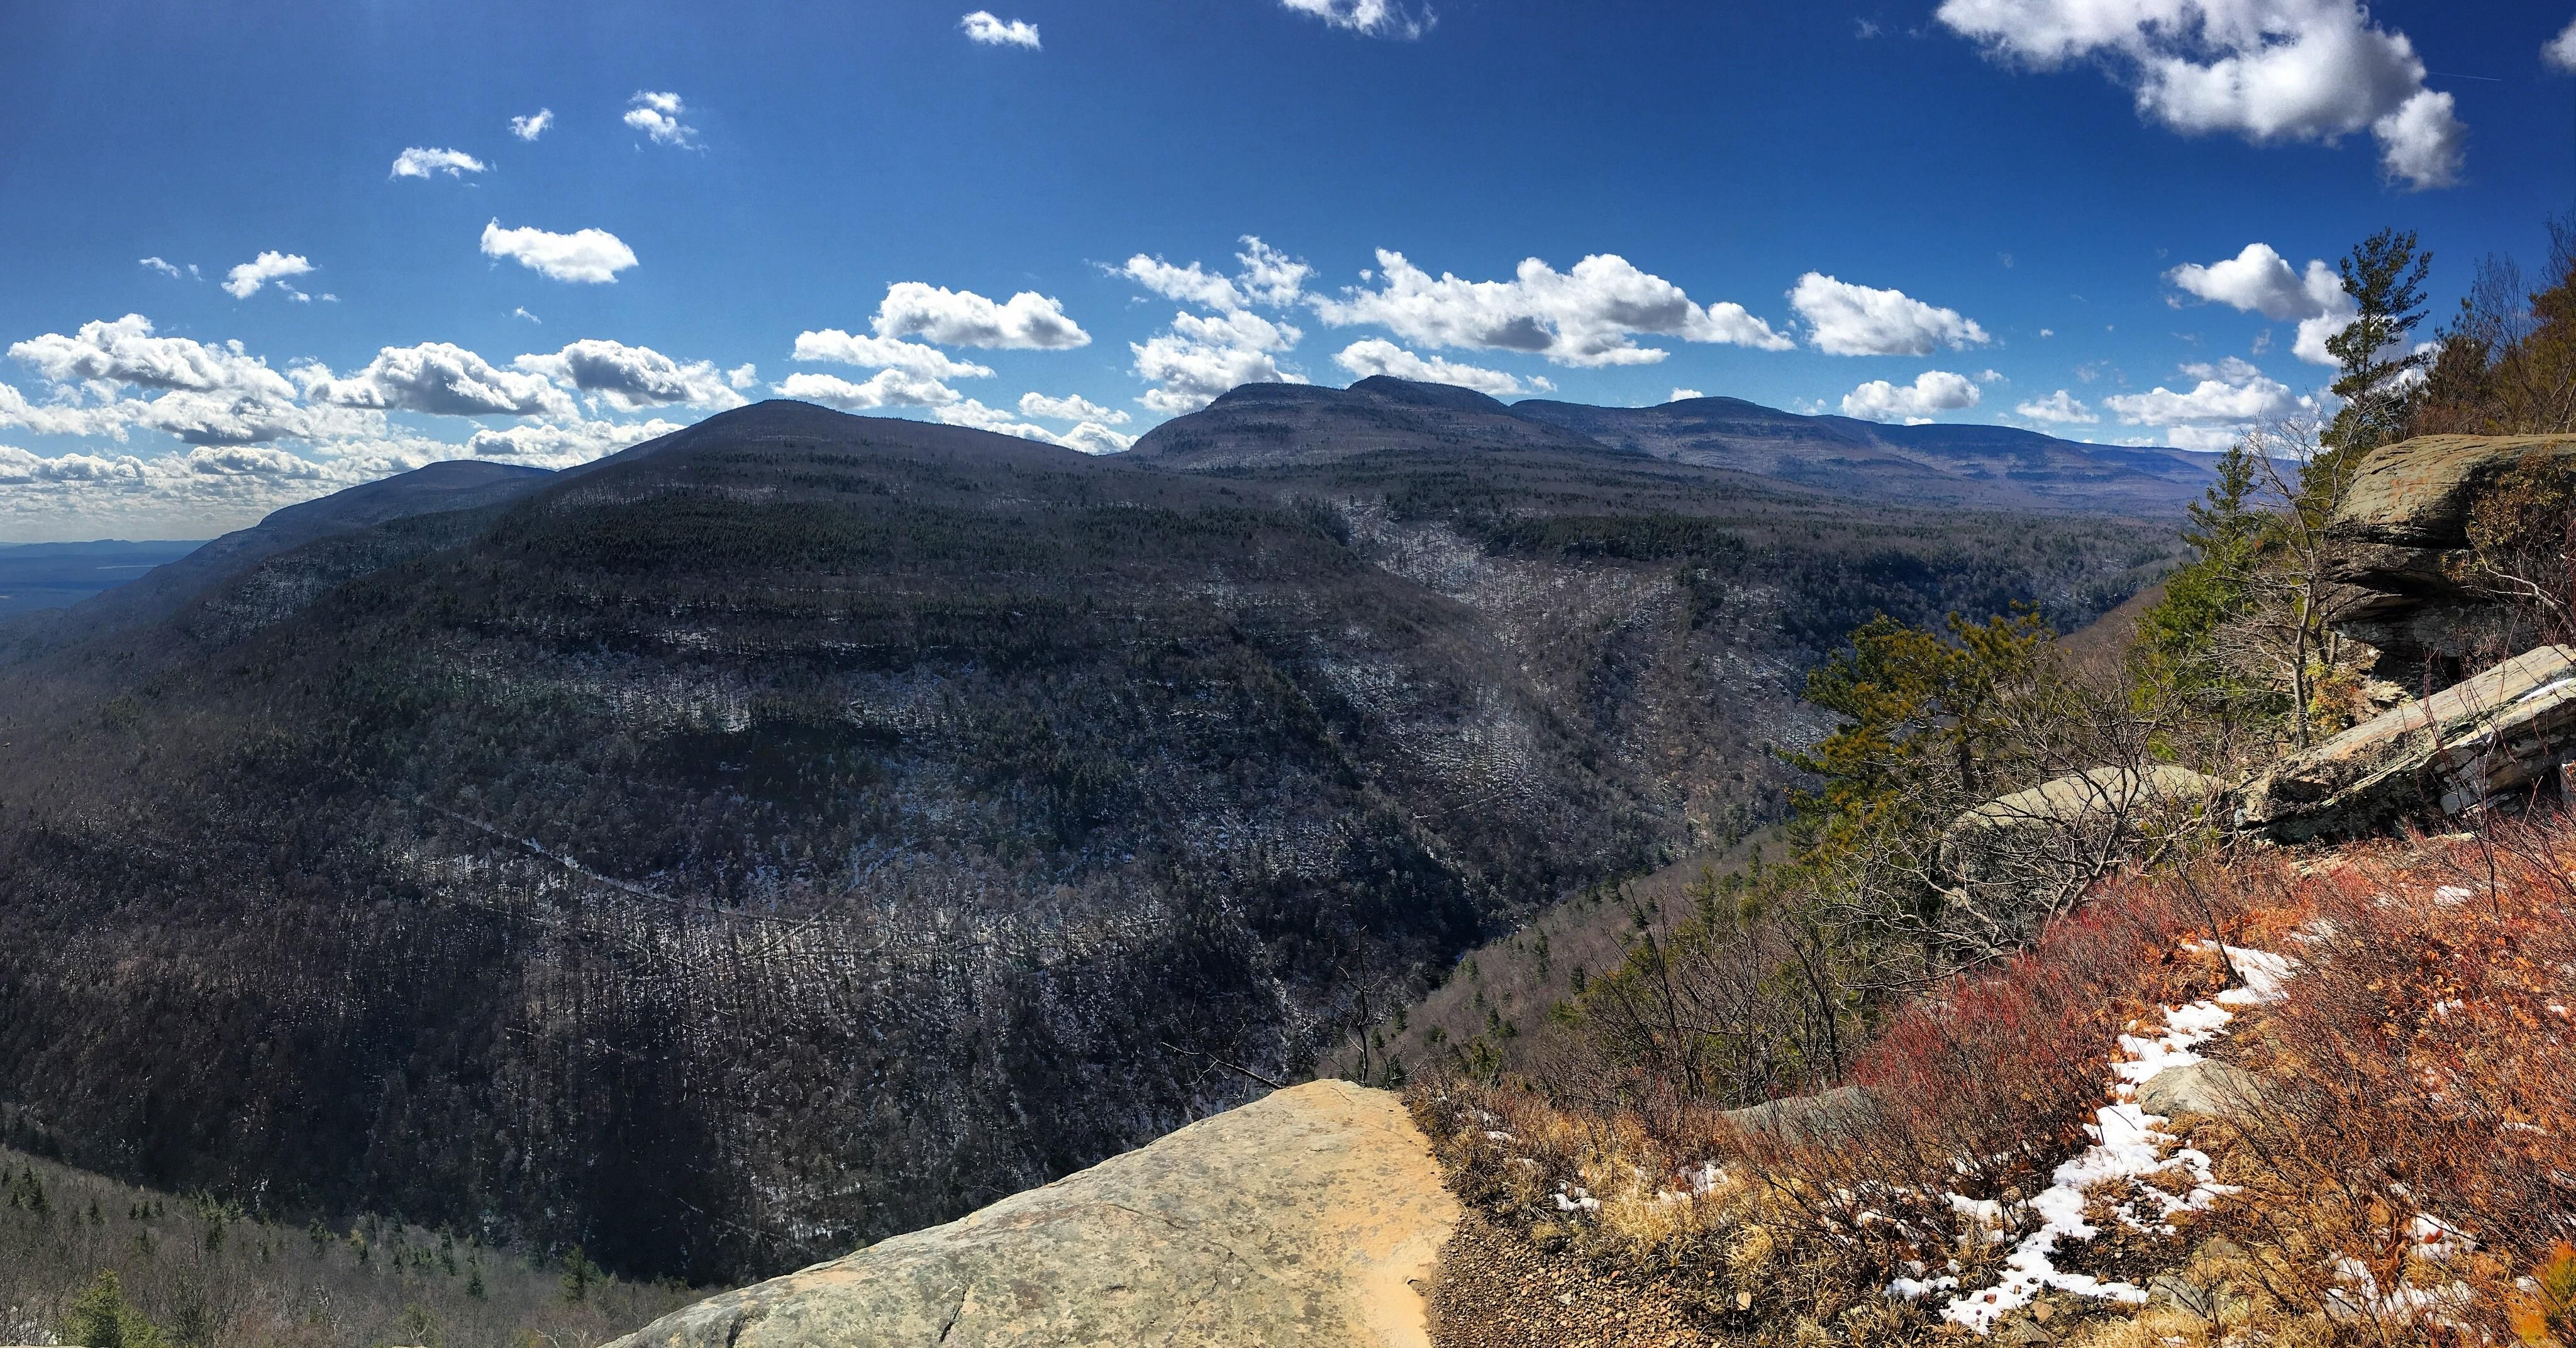 outdoor nature mountains. Huckleberry Point Catskill Mountains NY 4/2/17 #hiking #camping #outdoors Outdoor Nature